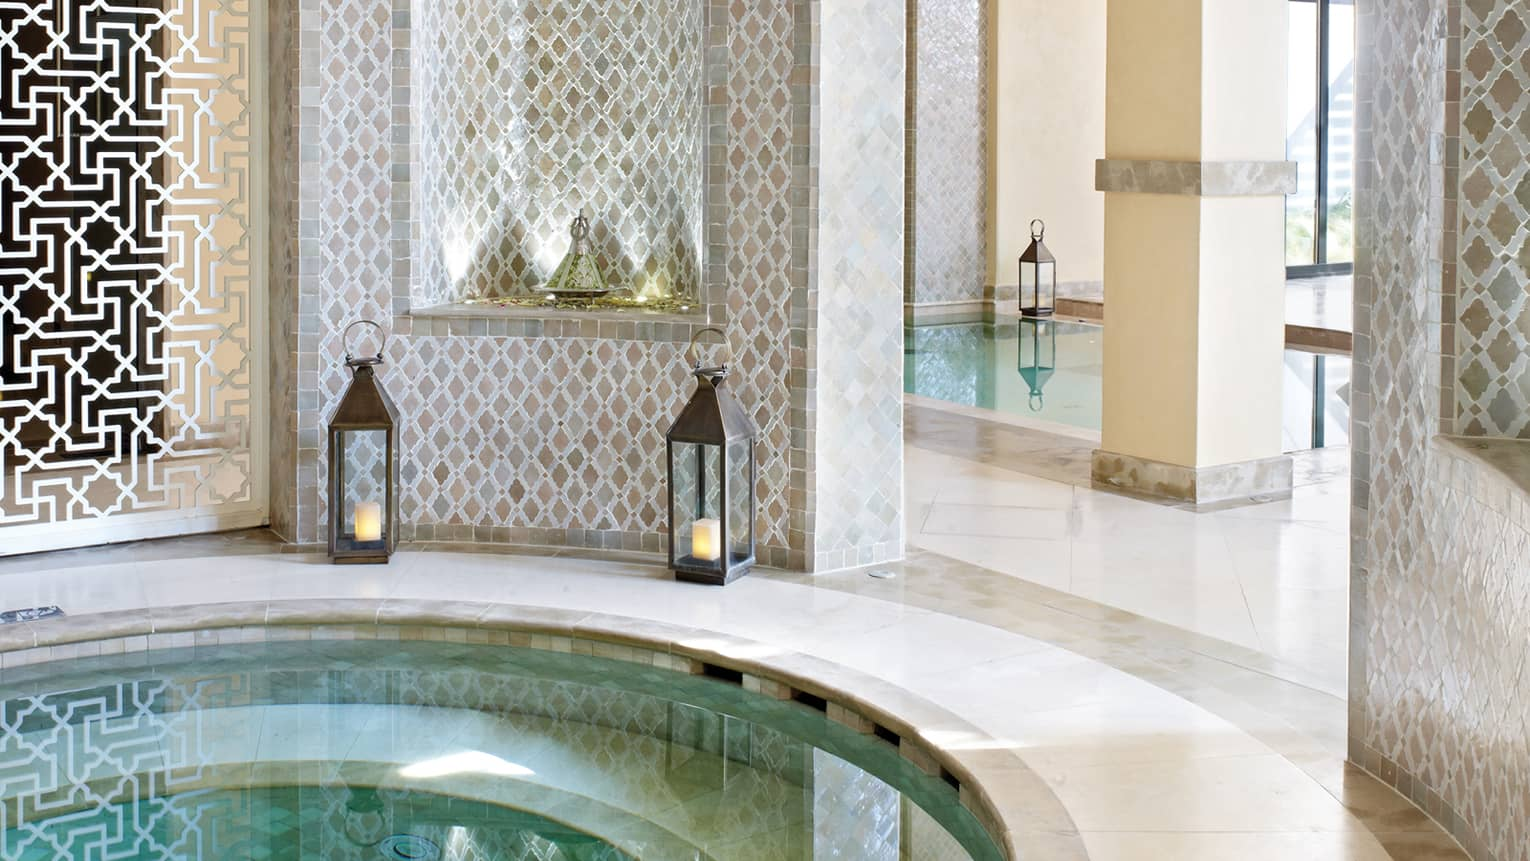 Small round whirlpool tub surrounded by decorative white detail wall, lanterns